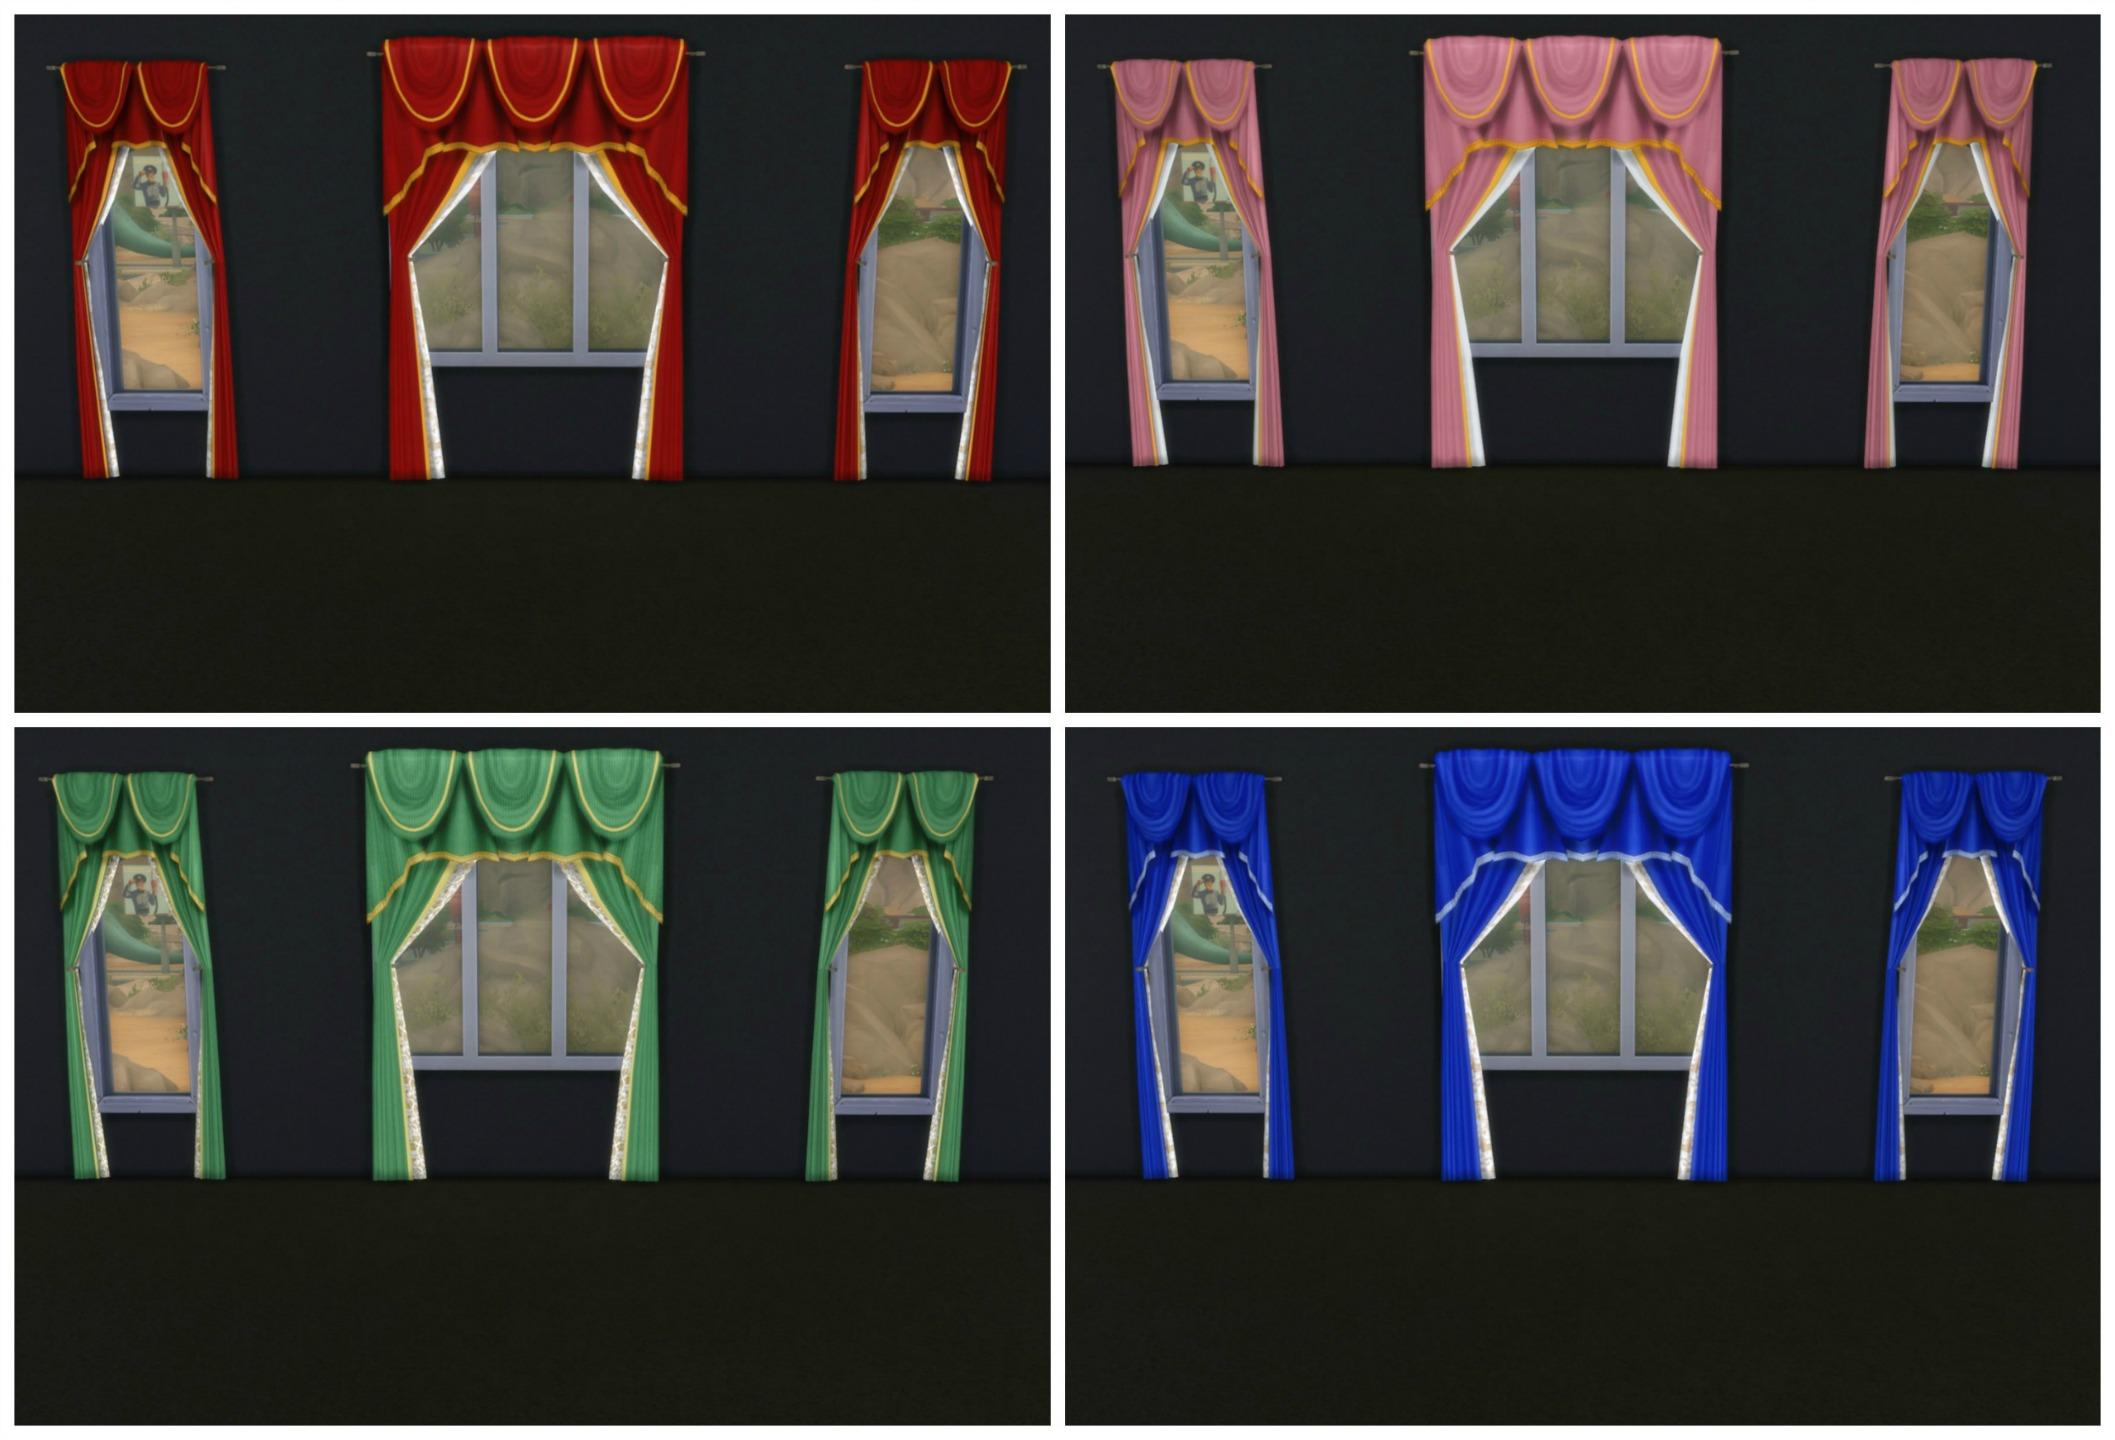 TS2 to TS4 - 12 Curtains